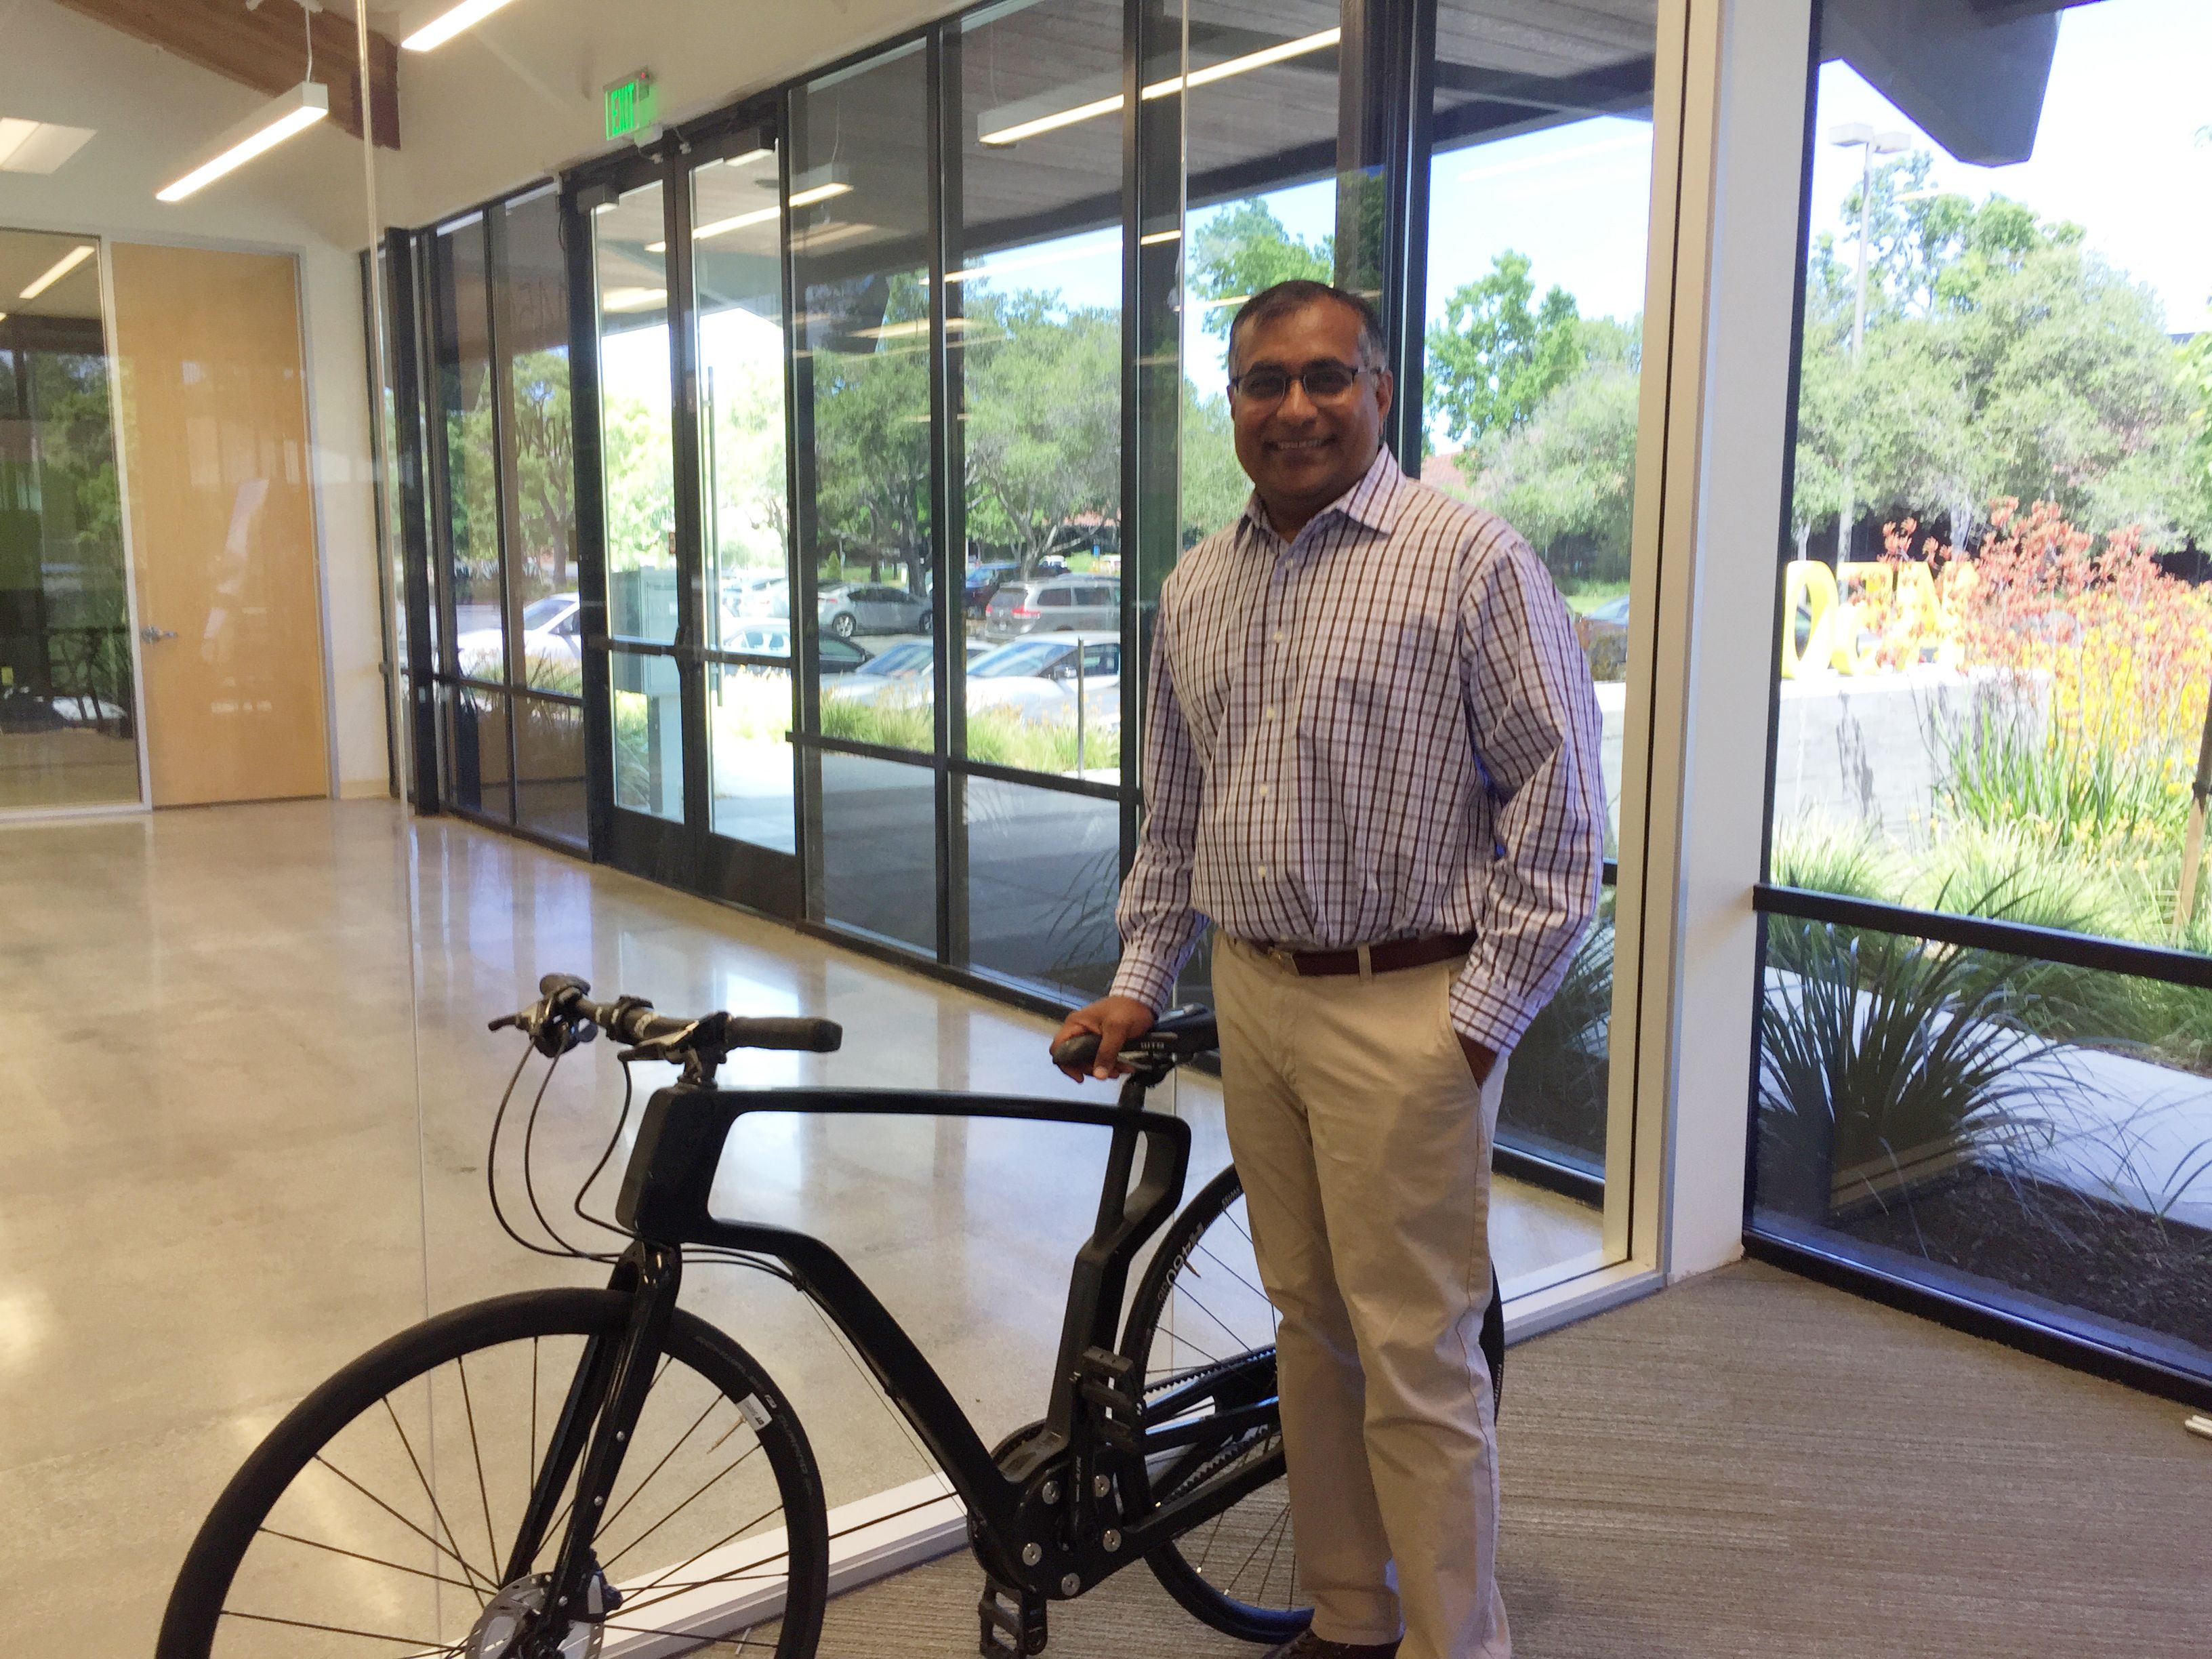 Image of Bheda in front of the bike with a 3D-printed carbon fiber composite frame.